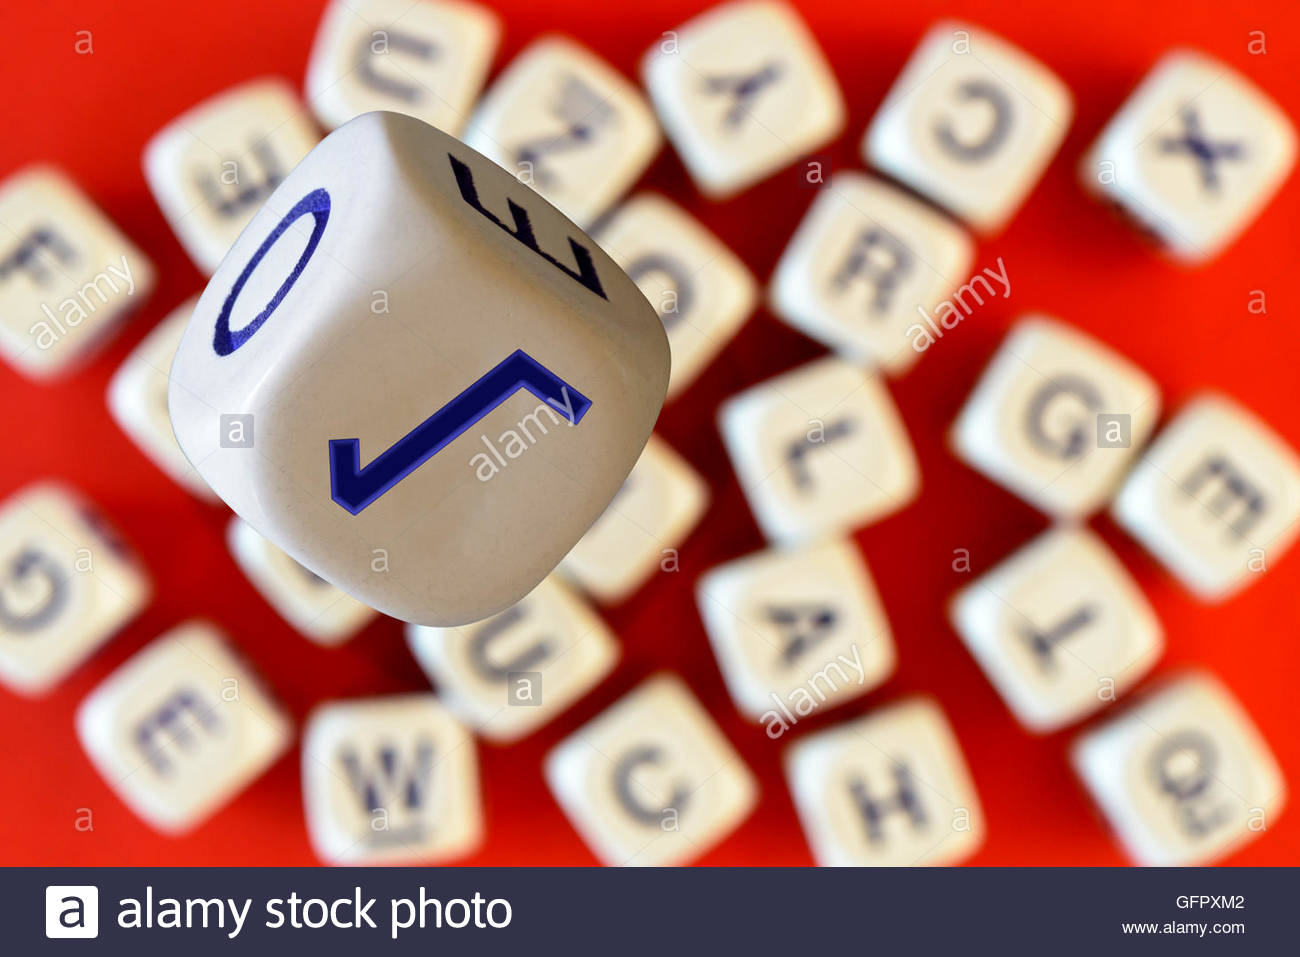 Square root symbol on the face of alphabet dice dorset england square root symbol on the face of alphabet dice dorset england britain uk buycottarizona Images